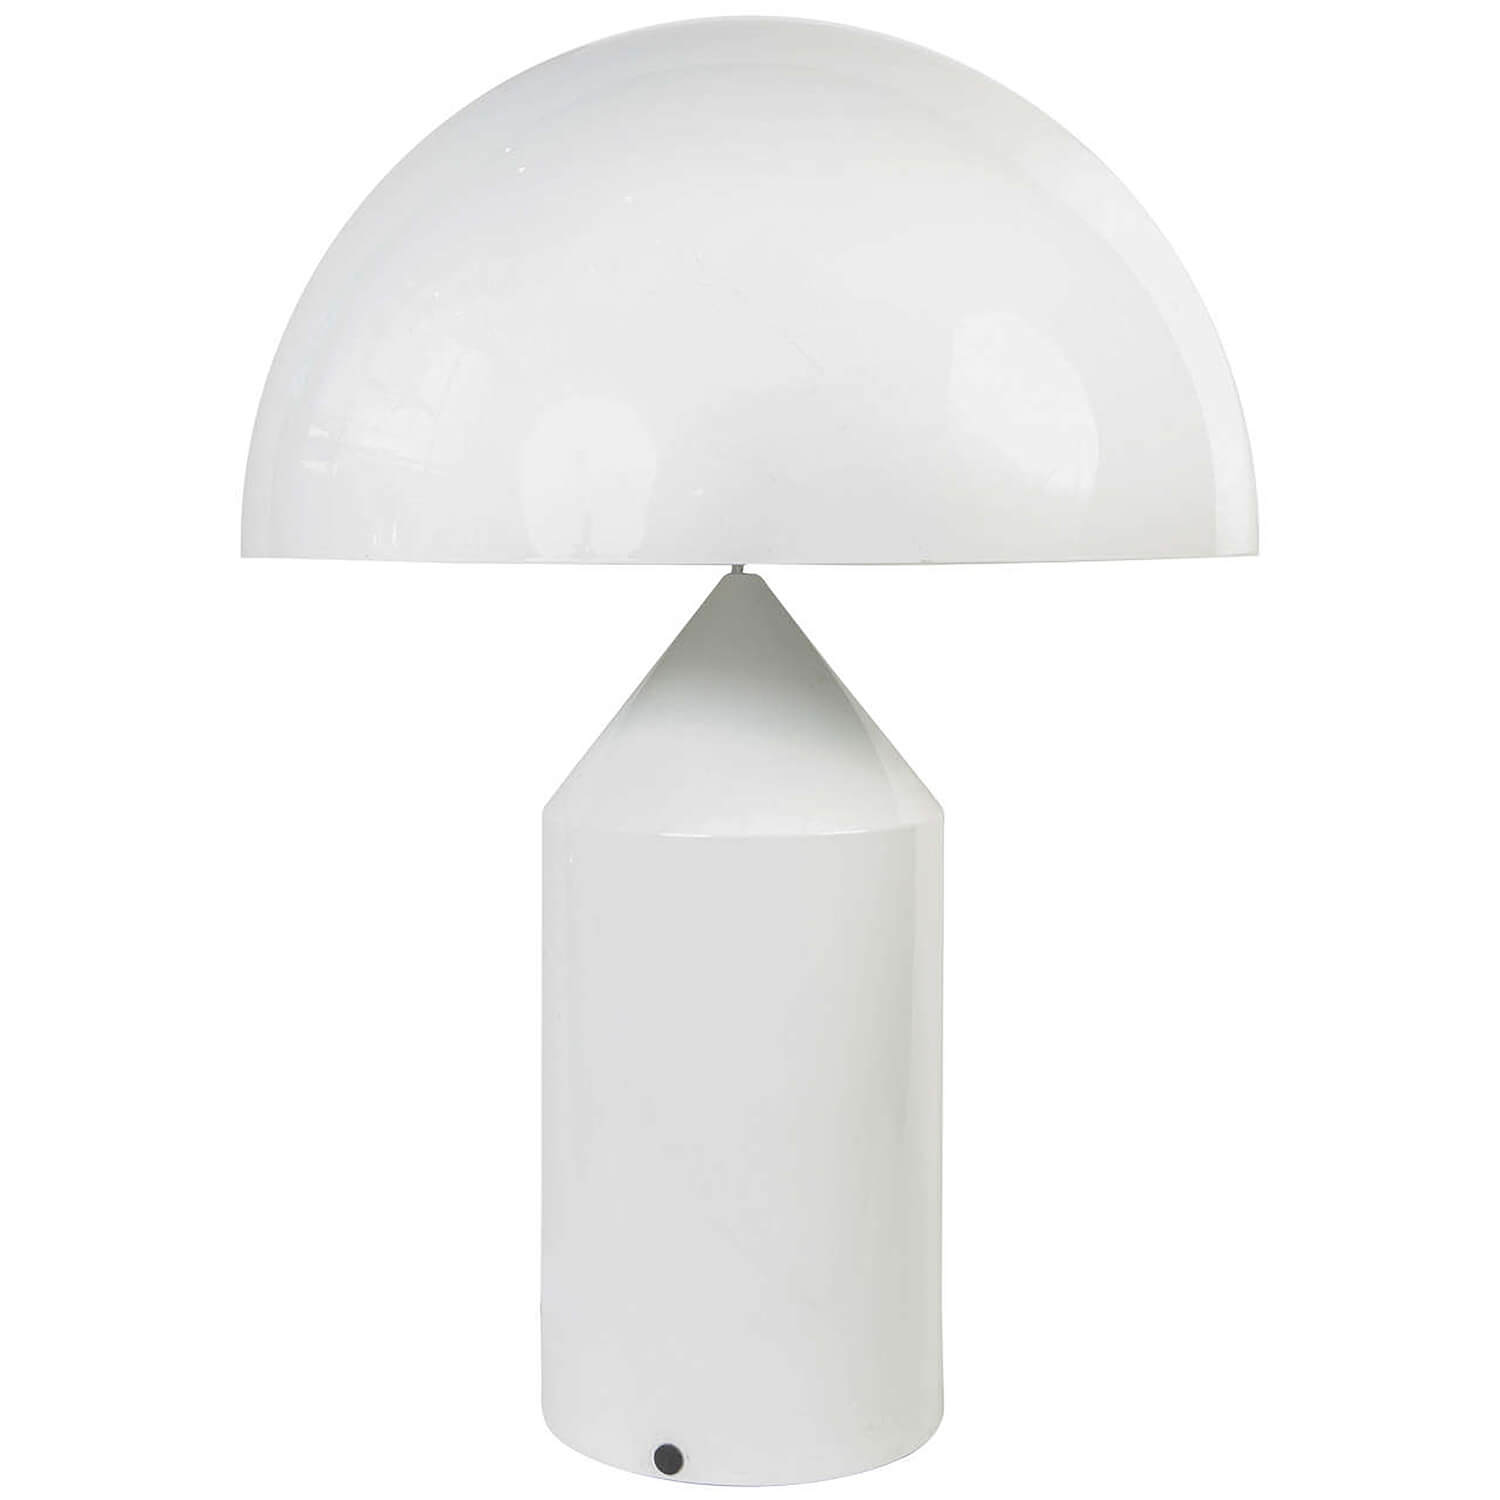 est living style hunter we are huntly magistretti atollo lamp